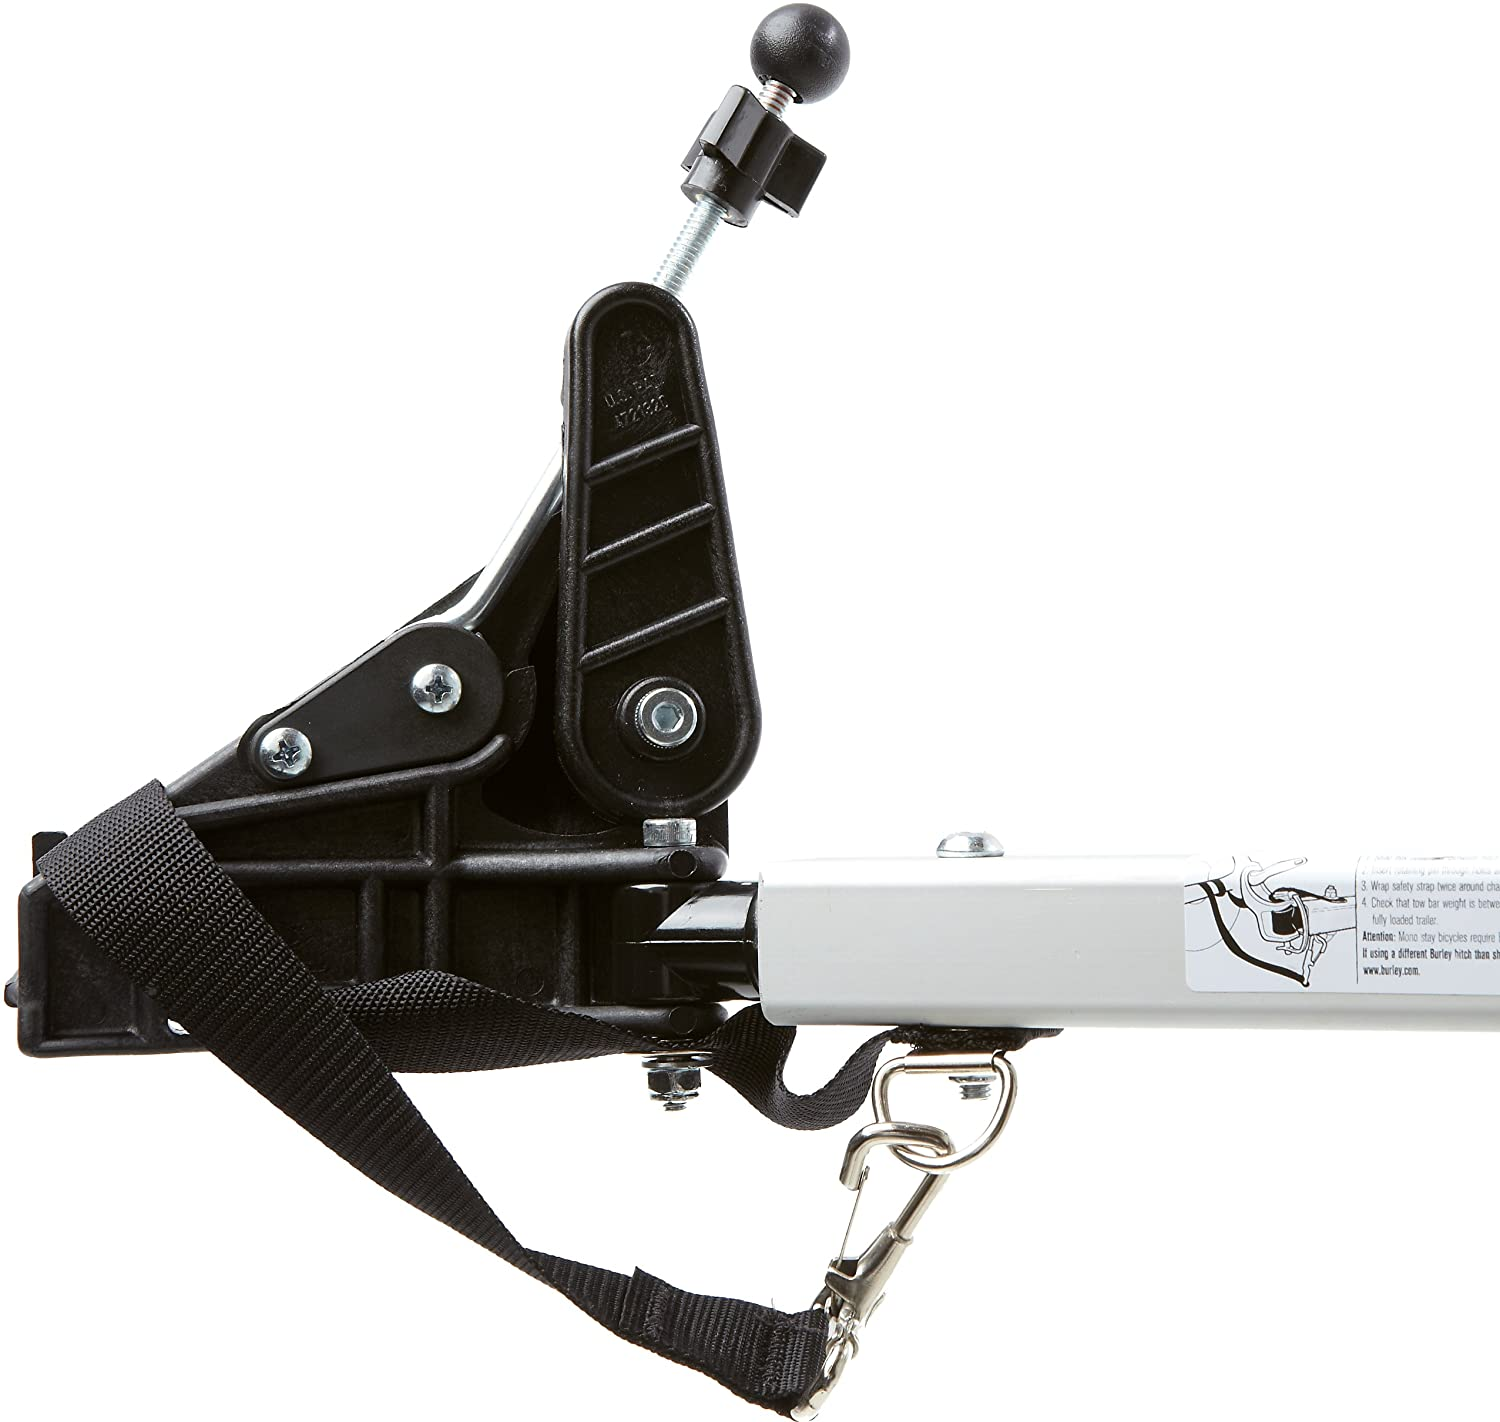 Burley Design Bicycle Trailer Classic Hitch